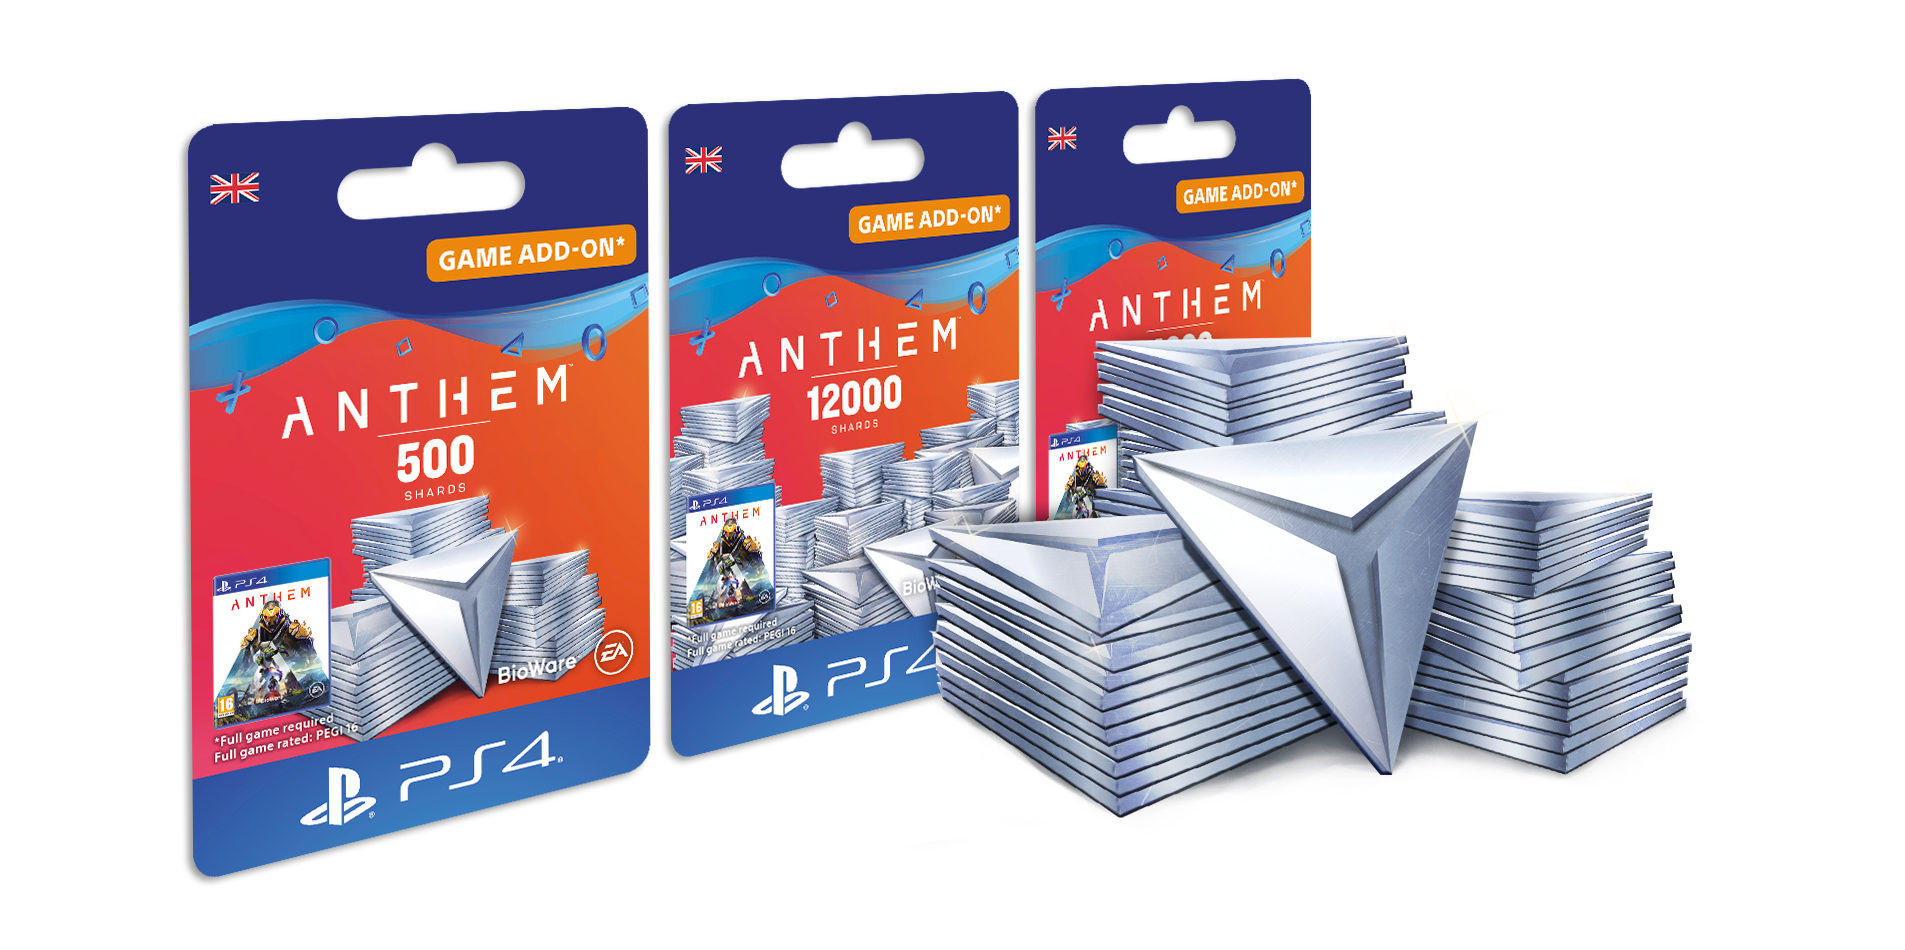 Anthem_CurrencyCards